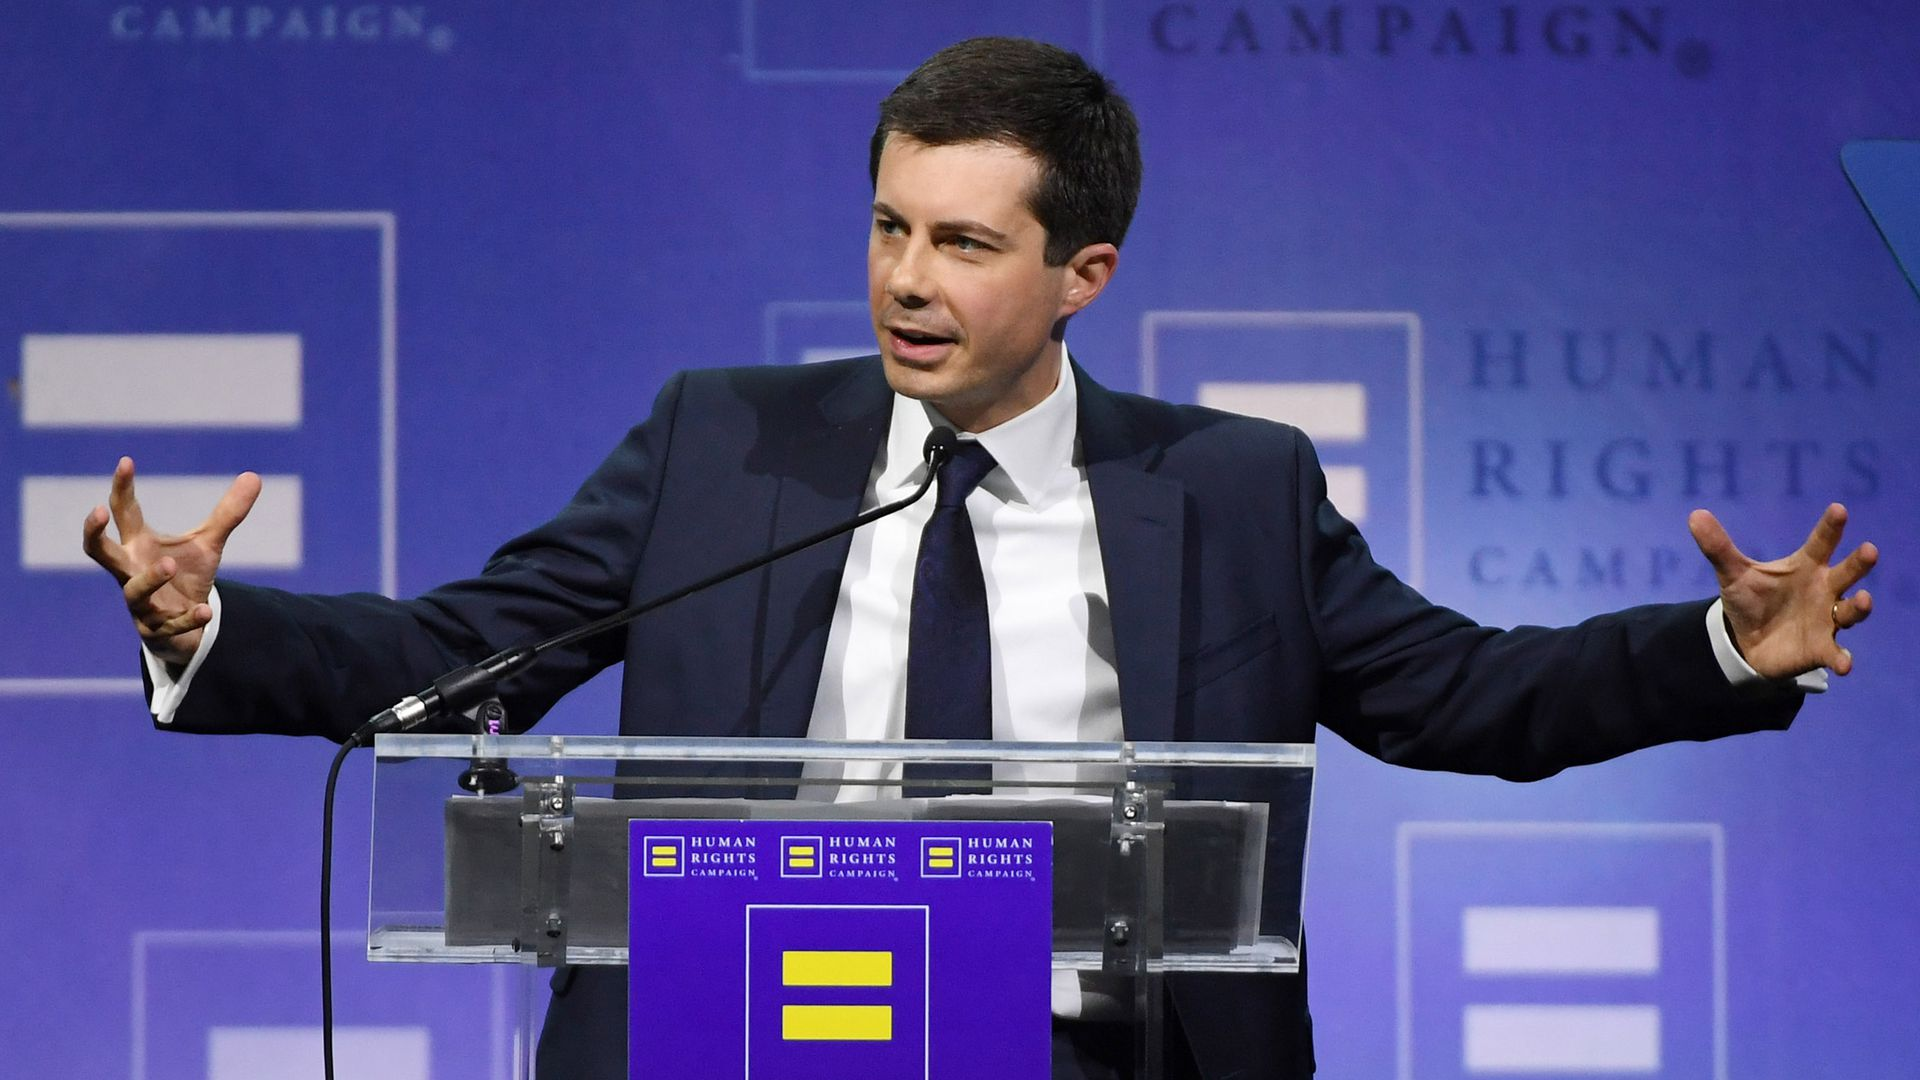 South Bend, Indiana Mayor Pete Buttigieg delivers a keynote address at the Human Rights Campaign's (HRC) 14th annual Las Vegas Gala at Caesars Palace on May 11, 2019 in Las Vegas, Nevada.